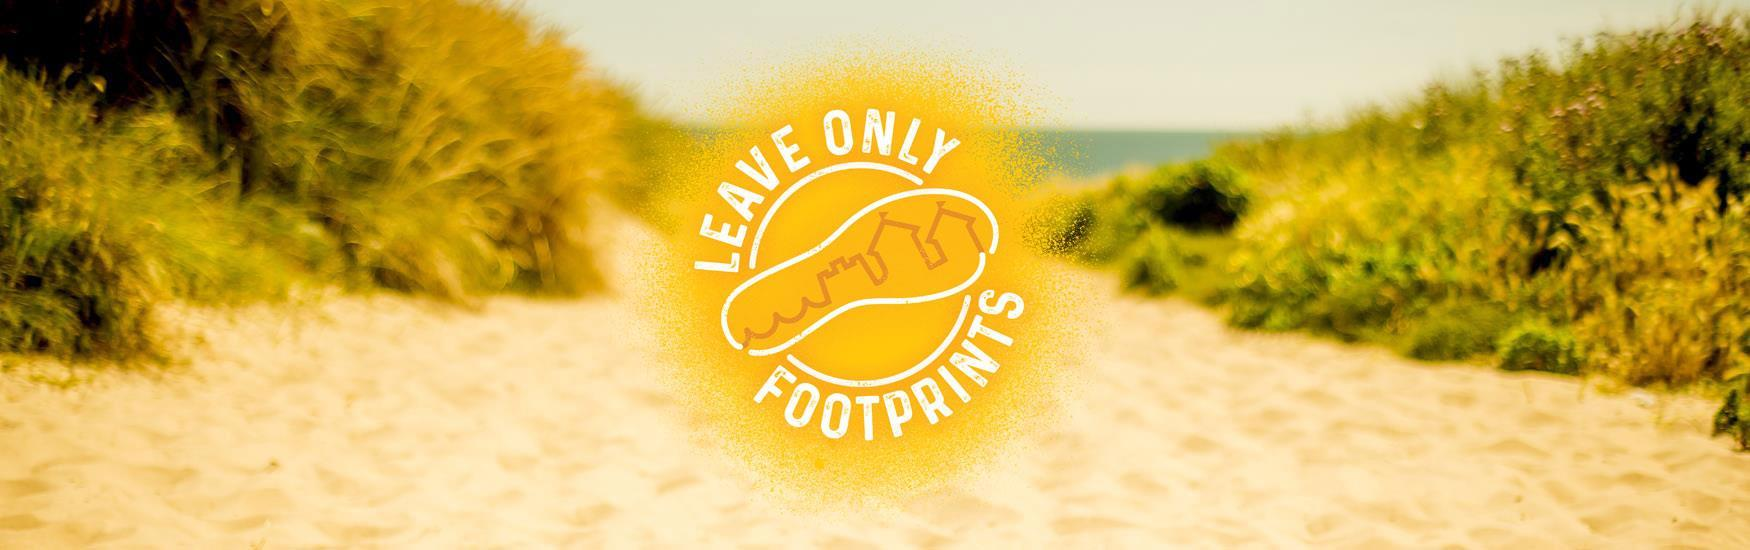 Leave only footprints logo with stunning beach in background